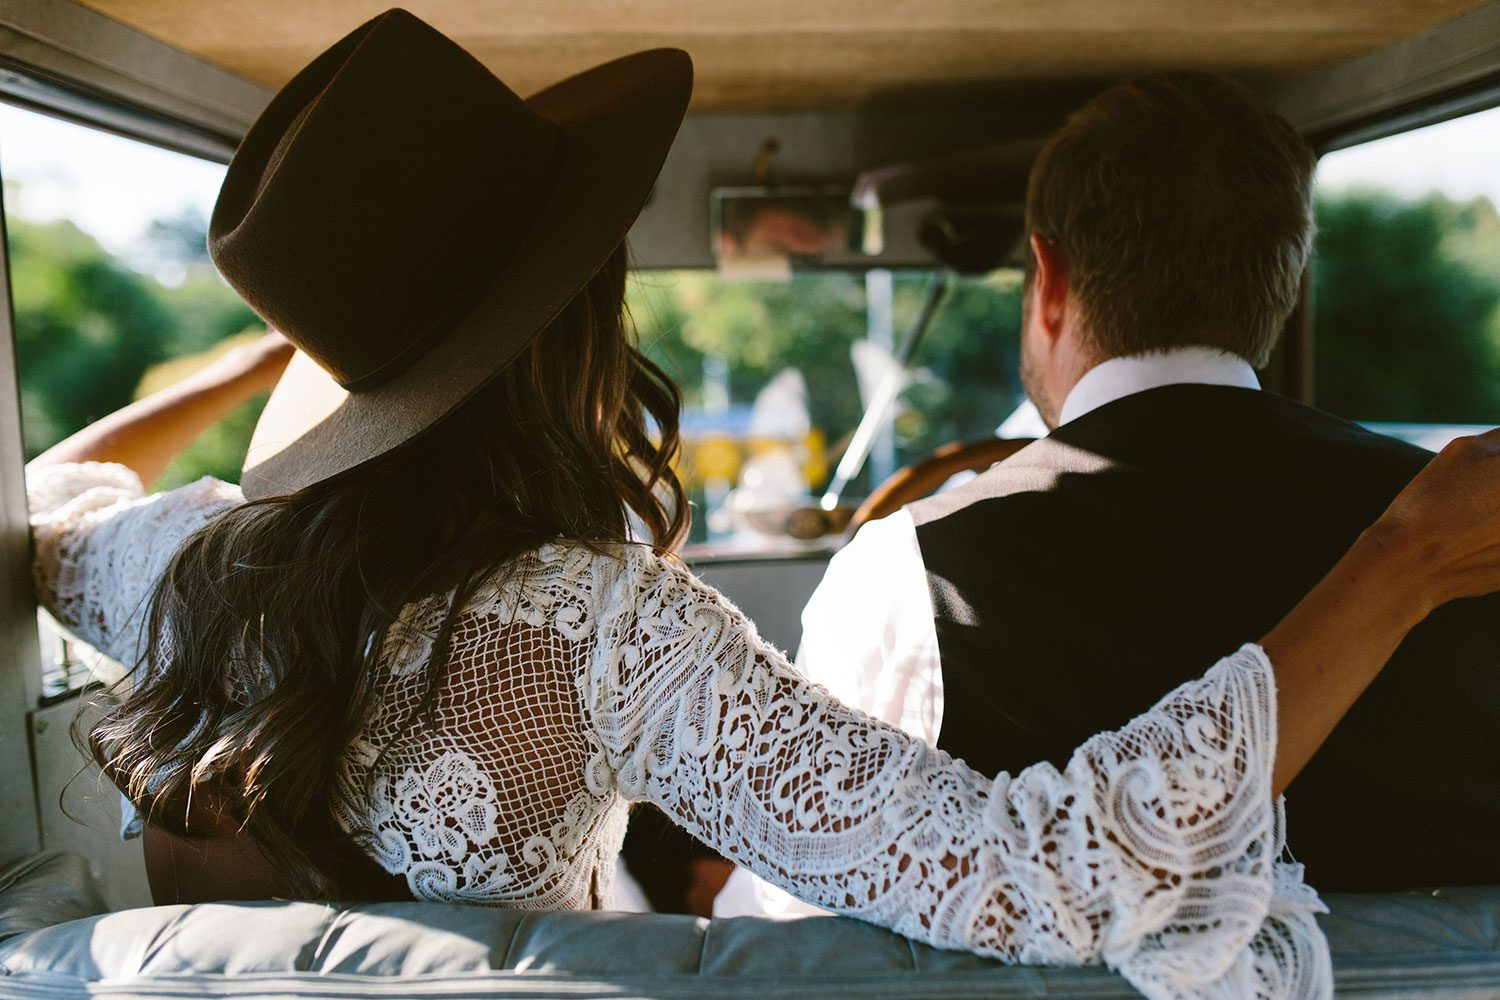 Bride wearing Sabine wedding gown by Auckland wedding dress maker Vinka Design, with French crochet lace detail and long sleeves - in vintage car with groom